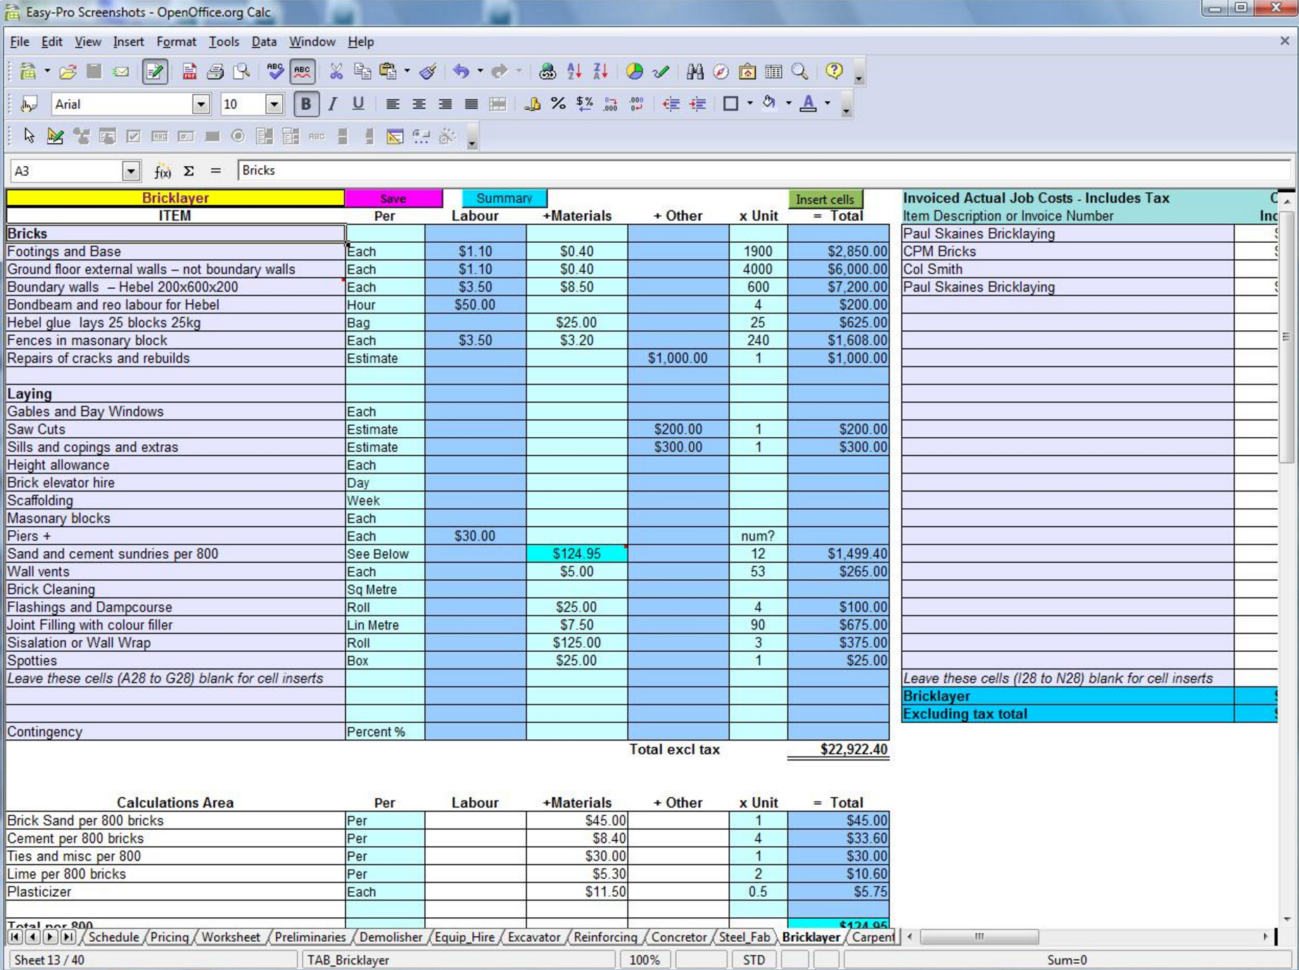 Building Cost Spreadsheet Template Australia Throughout 5 Free Construction Estimating  Takeoff Products Perfect For Smbs